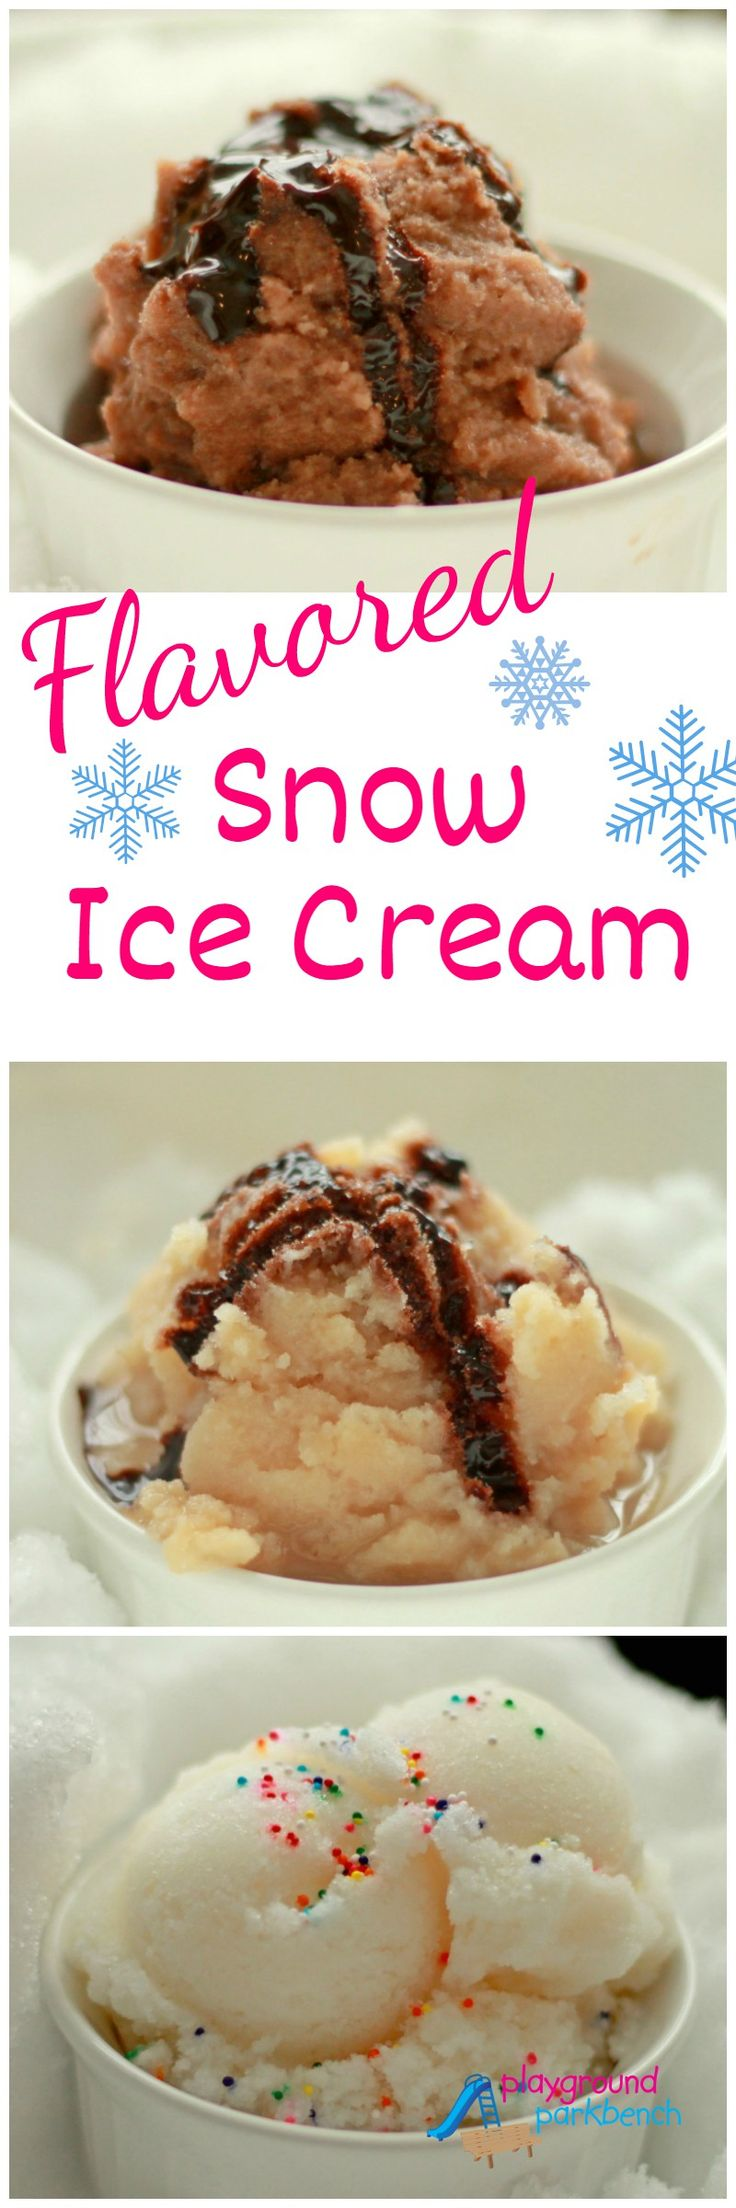 Celebrate your snow day with homemade snow ice cream - and you can make more than just vanilla.  Try chocolate, coffee, peppermint chip and strawberry too!  Simple 4-5 ingredients each plus snow, you'll have fresh ice cream in less than 5 minutes.  Perfect for kids to make too!